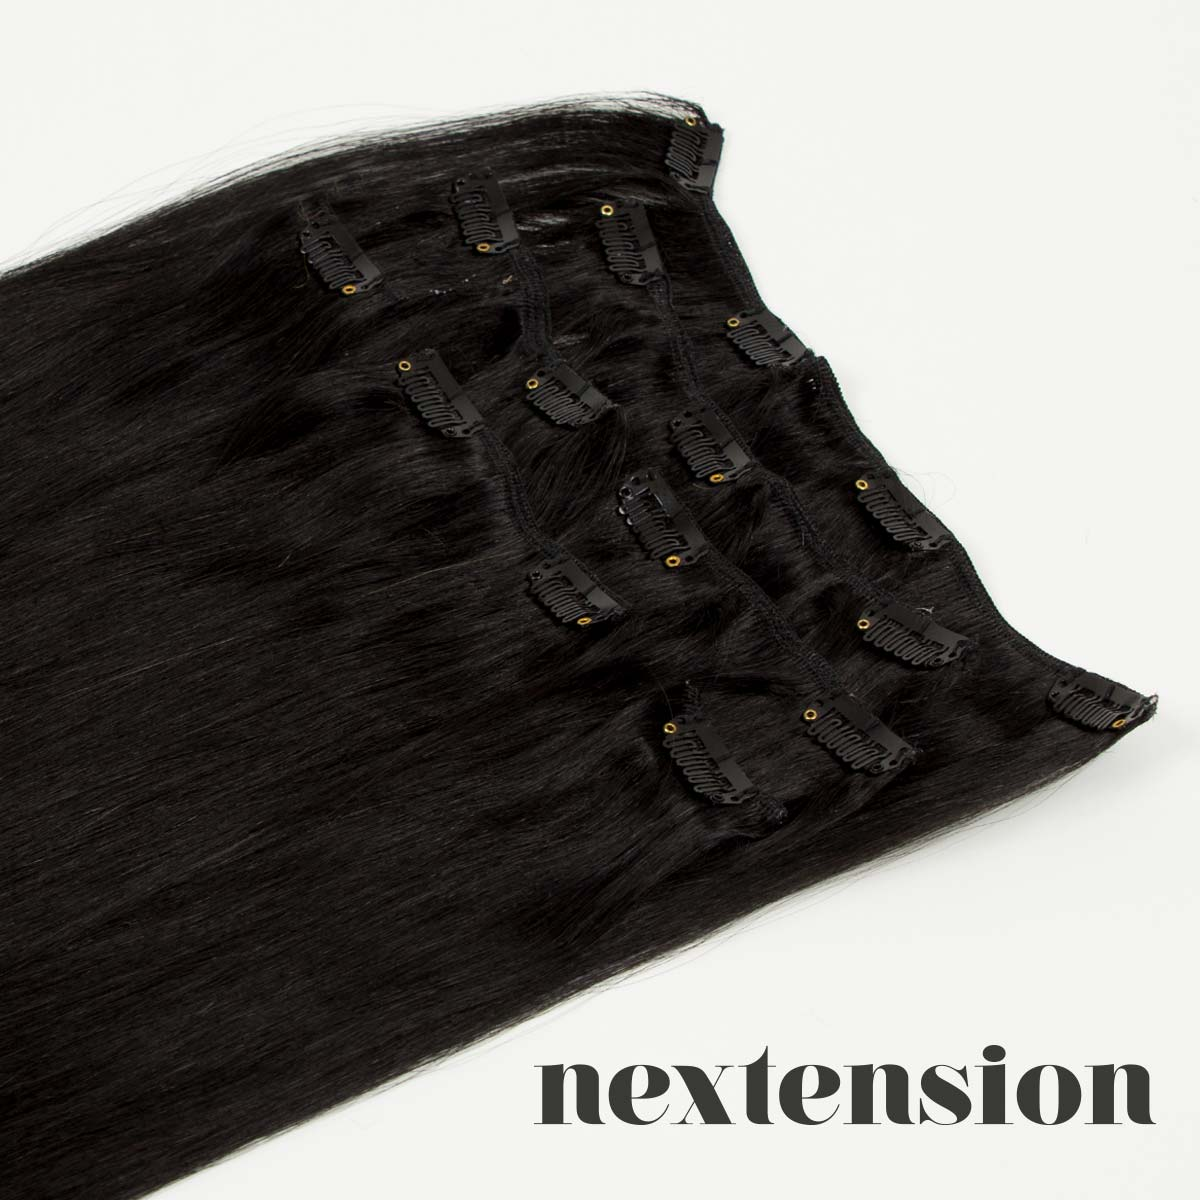 Nextension Clip-On Extension 50cm Color #1 Salty Licorice